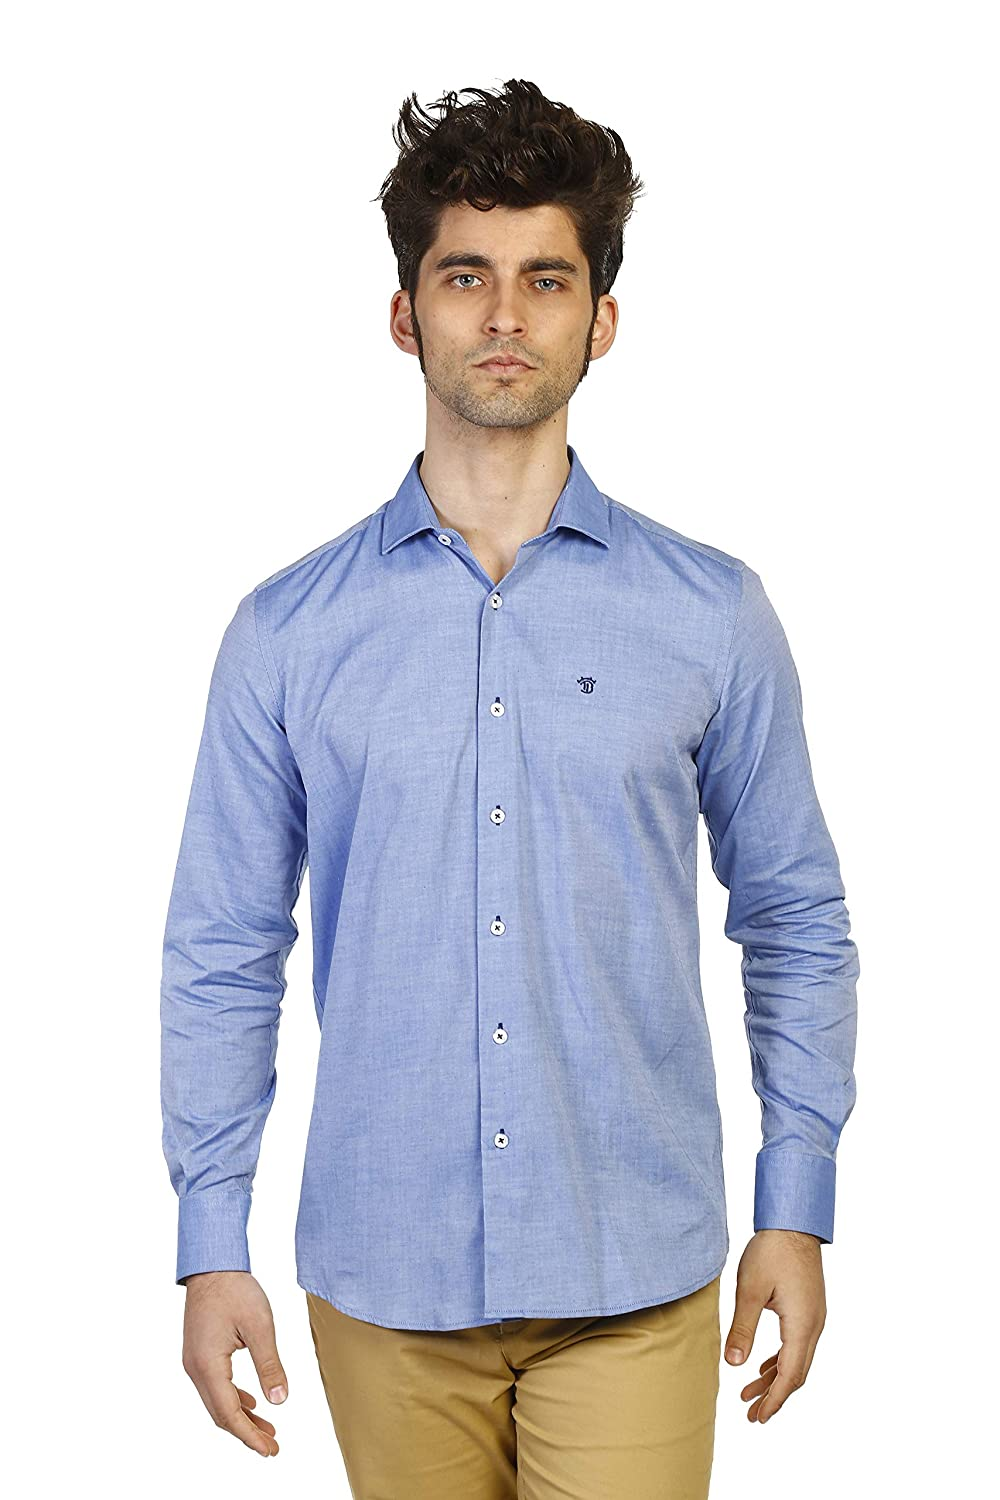 XXL THE TIME OF BOCHA Man Shirt Premium bleu